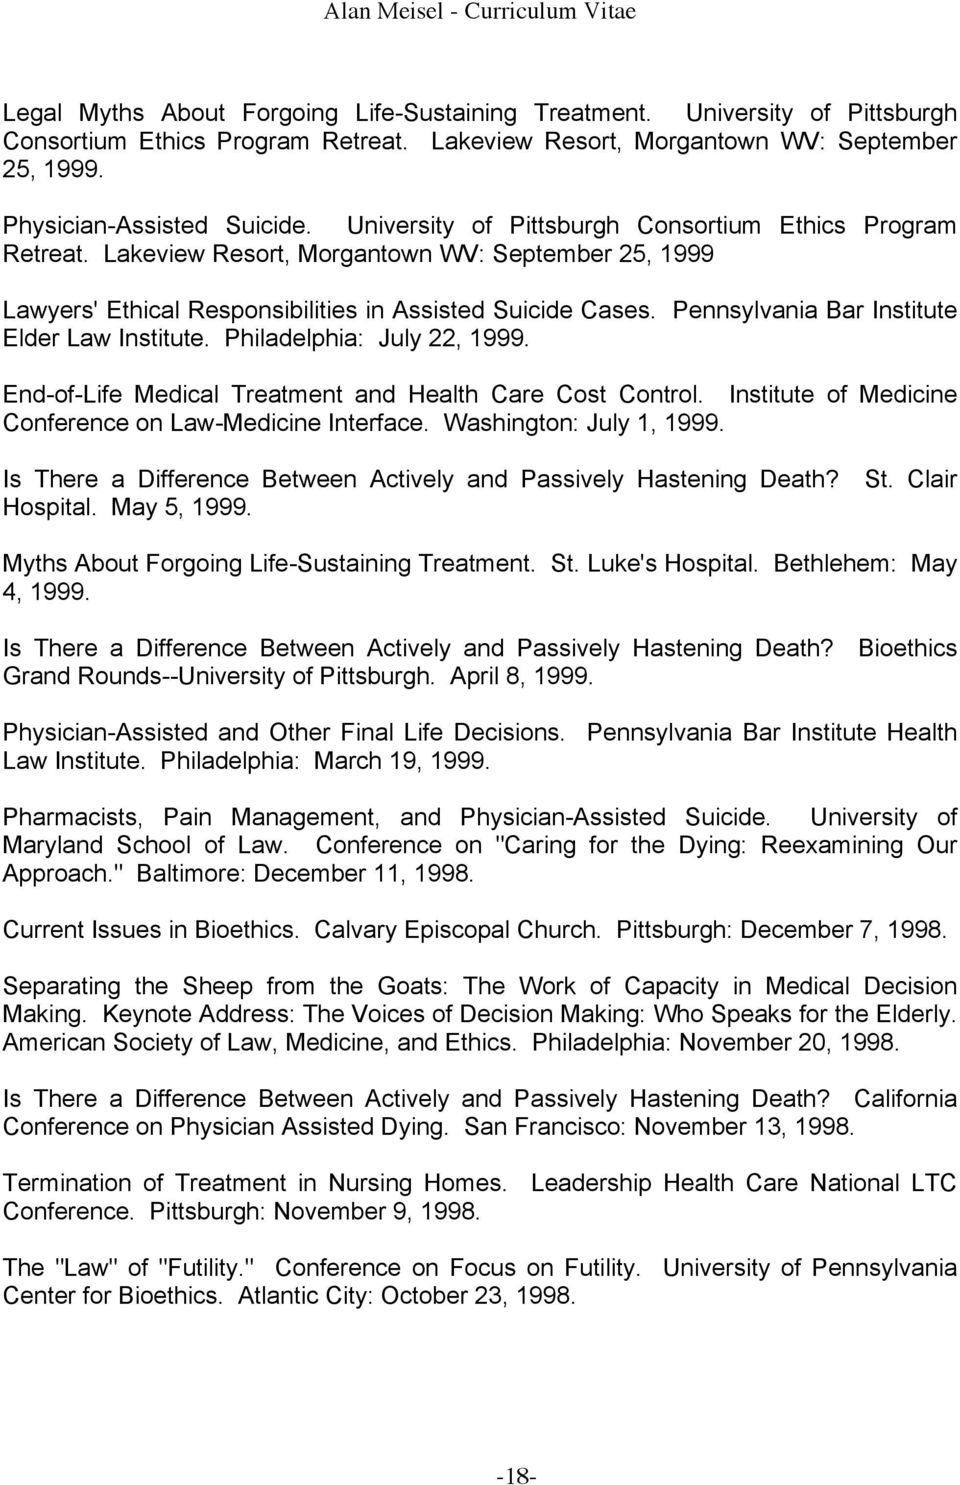 Pennsylvania Bar Institute Elder Law Institute. Philadelphia: July 22, 1999. End-of-Life Medical Treatment and Health Care Cost Control. Institute of Medicine Conference on Law-Medicine Interface.